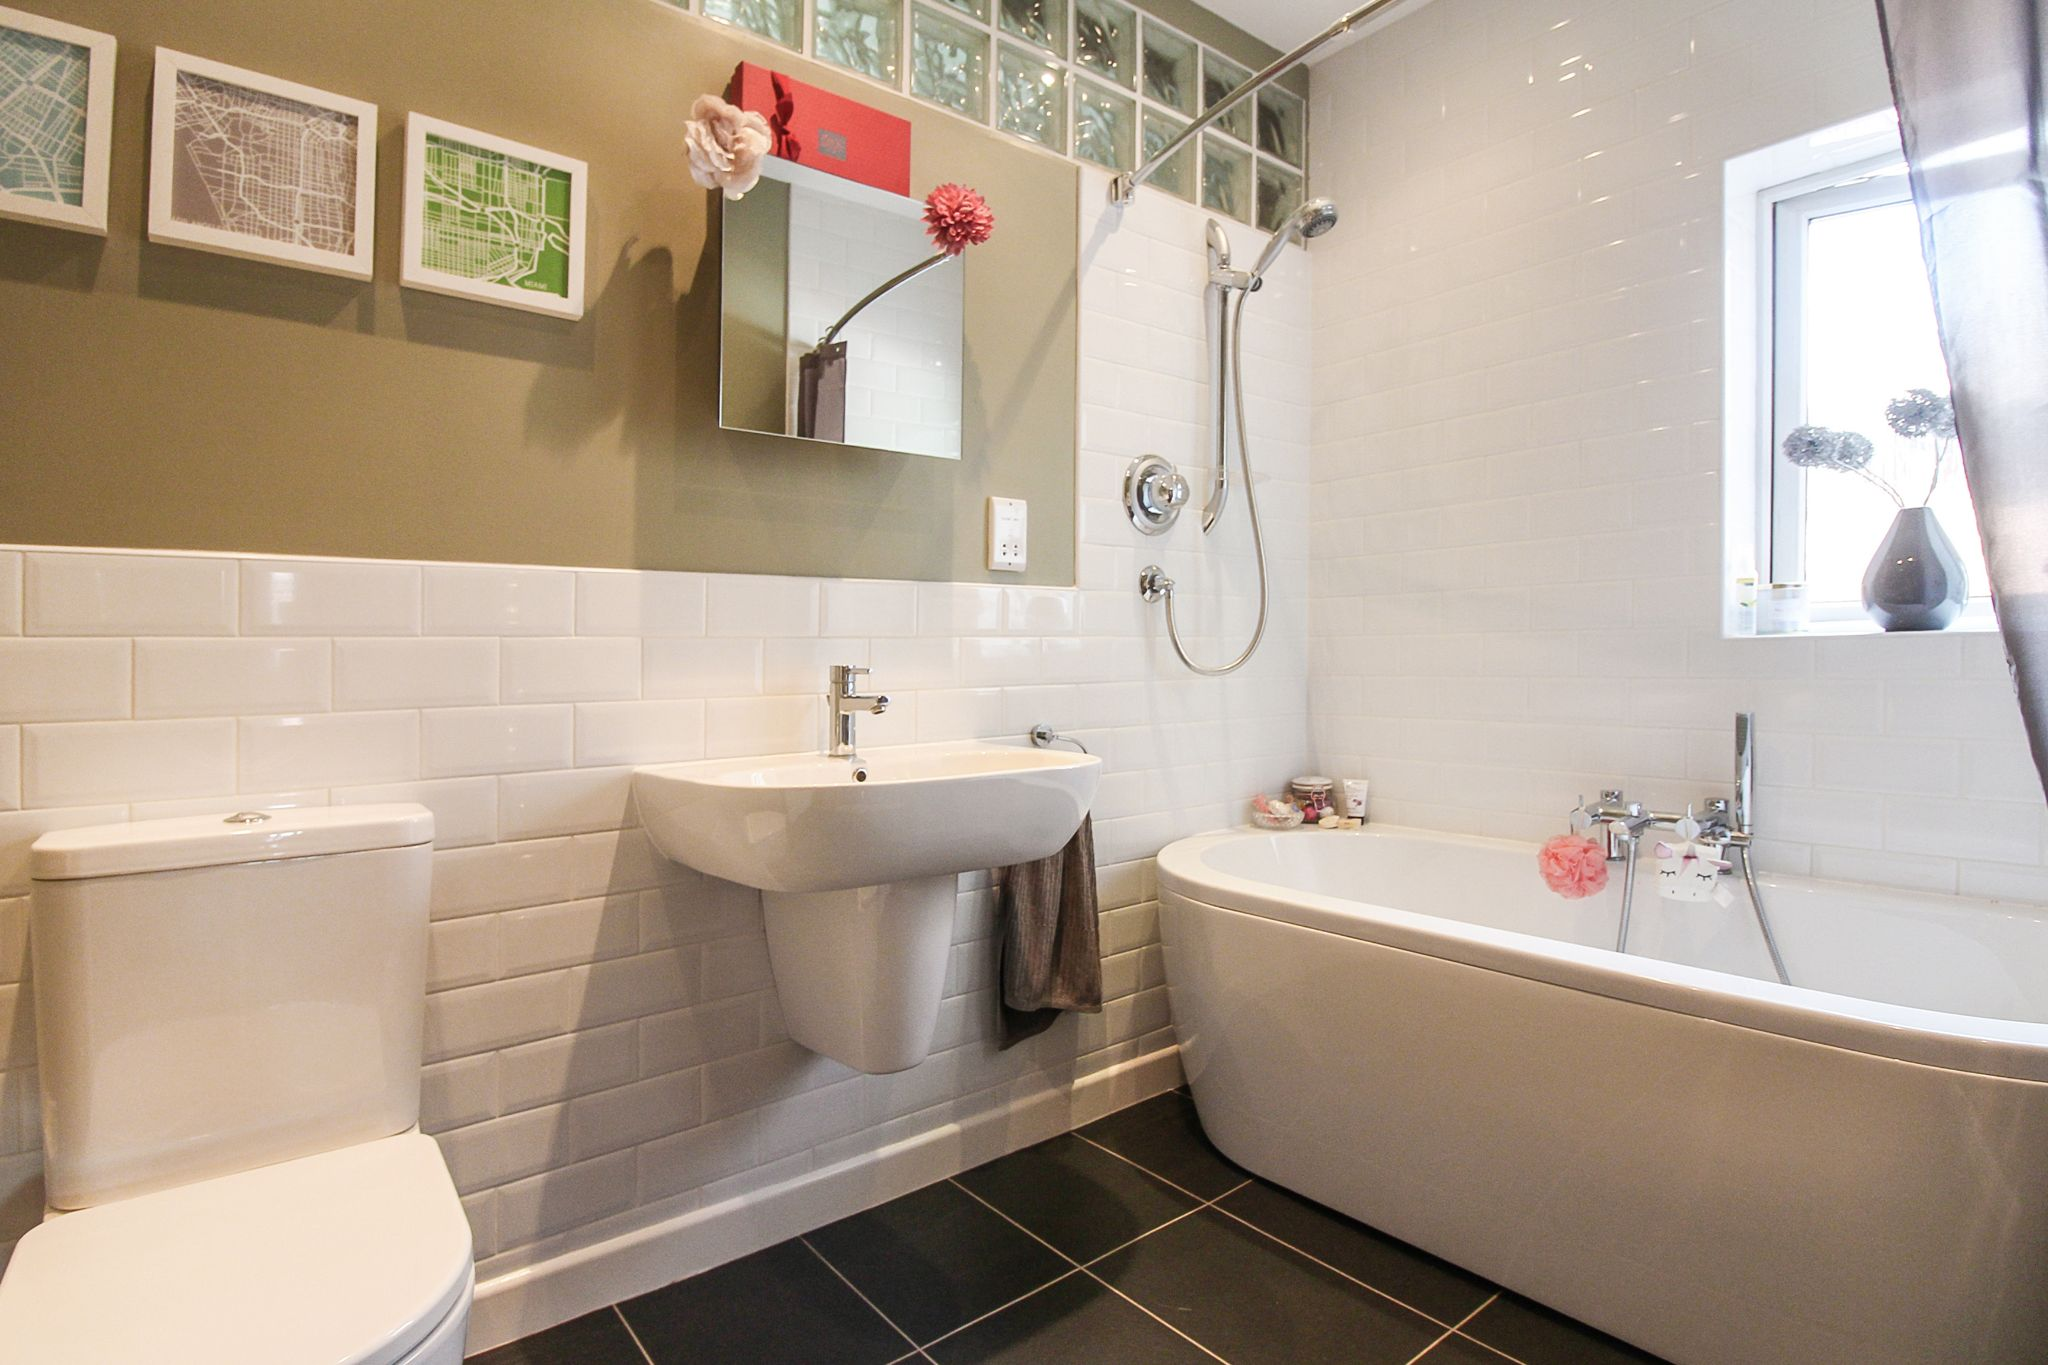 4 bedroom detached house For Sale in Solihull - Photograph 16.